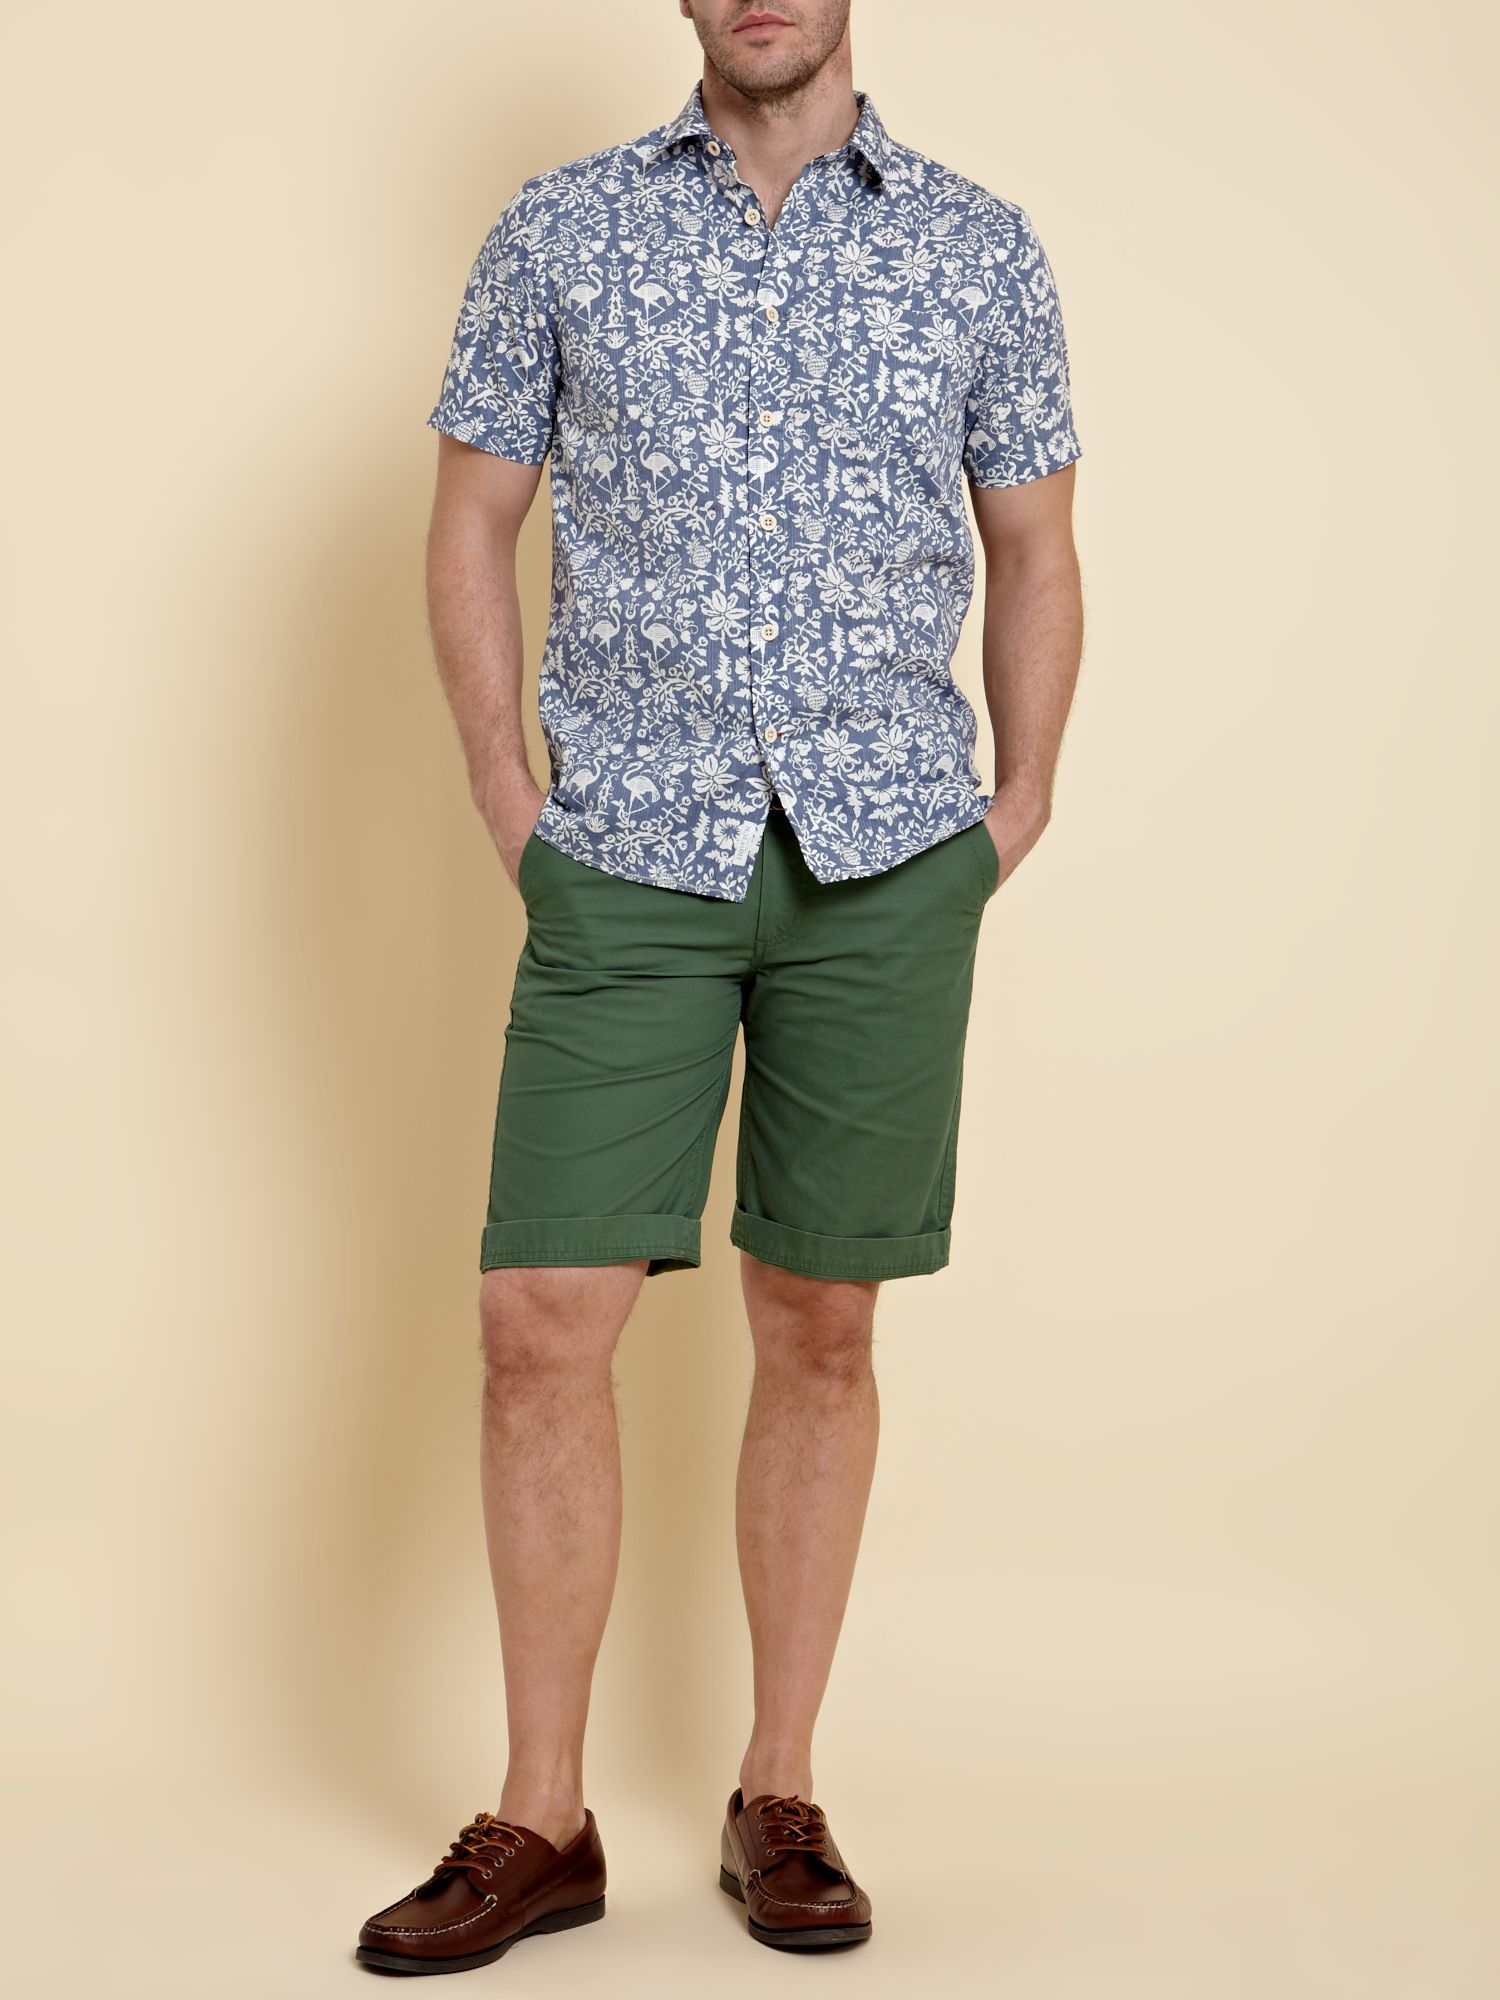 Short sleeved vegas printed shirt